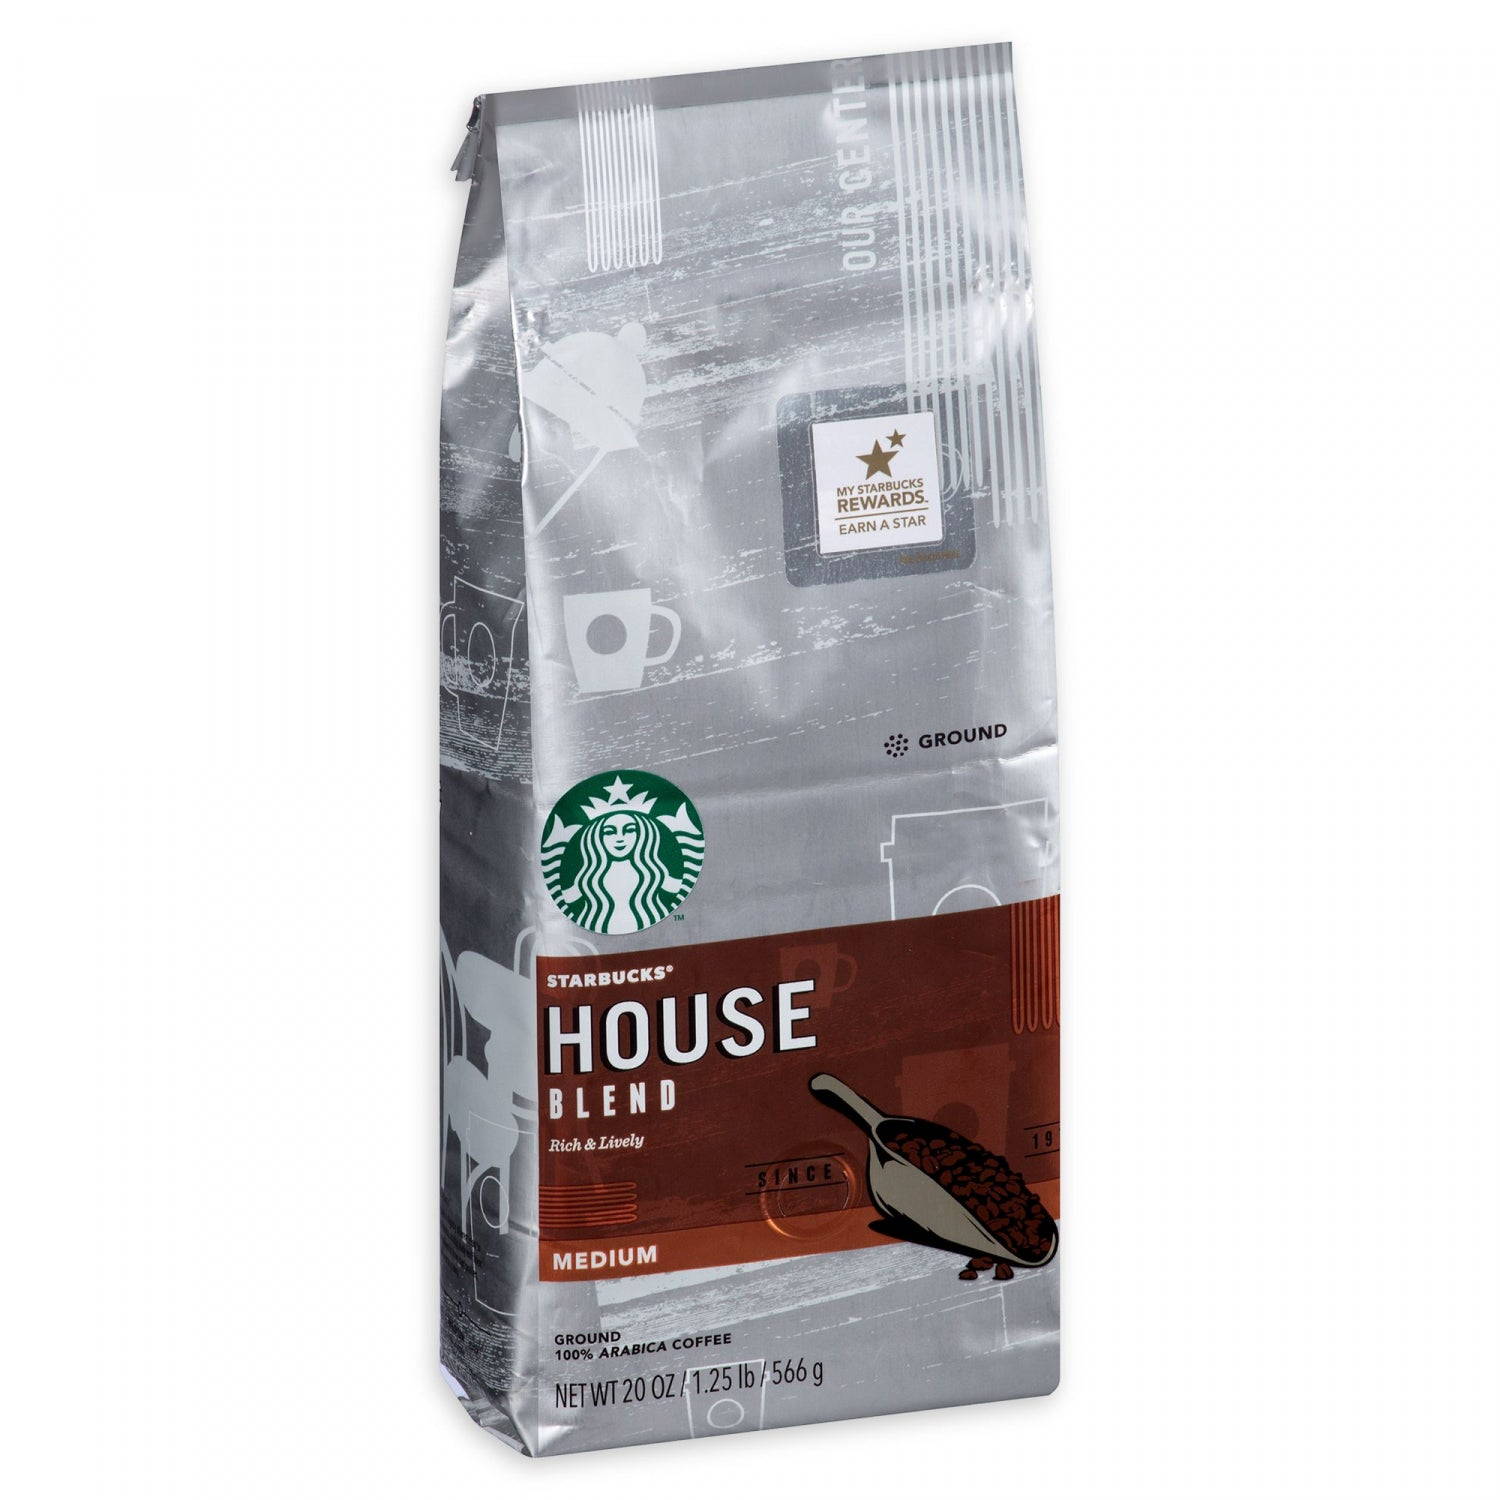 Starbucks House Blend Ground Coffee | MrOrganic Store